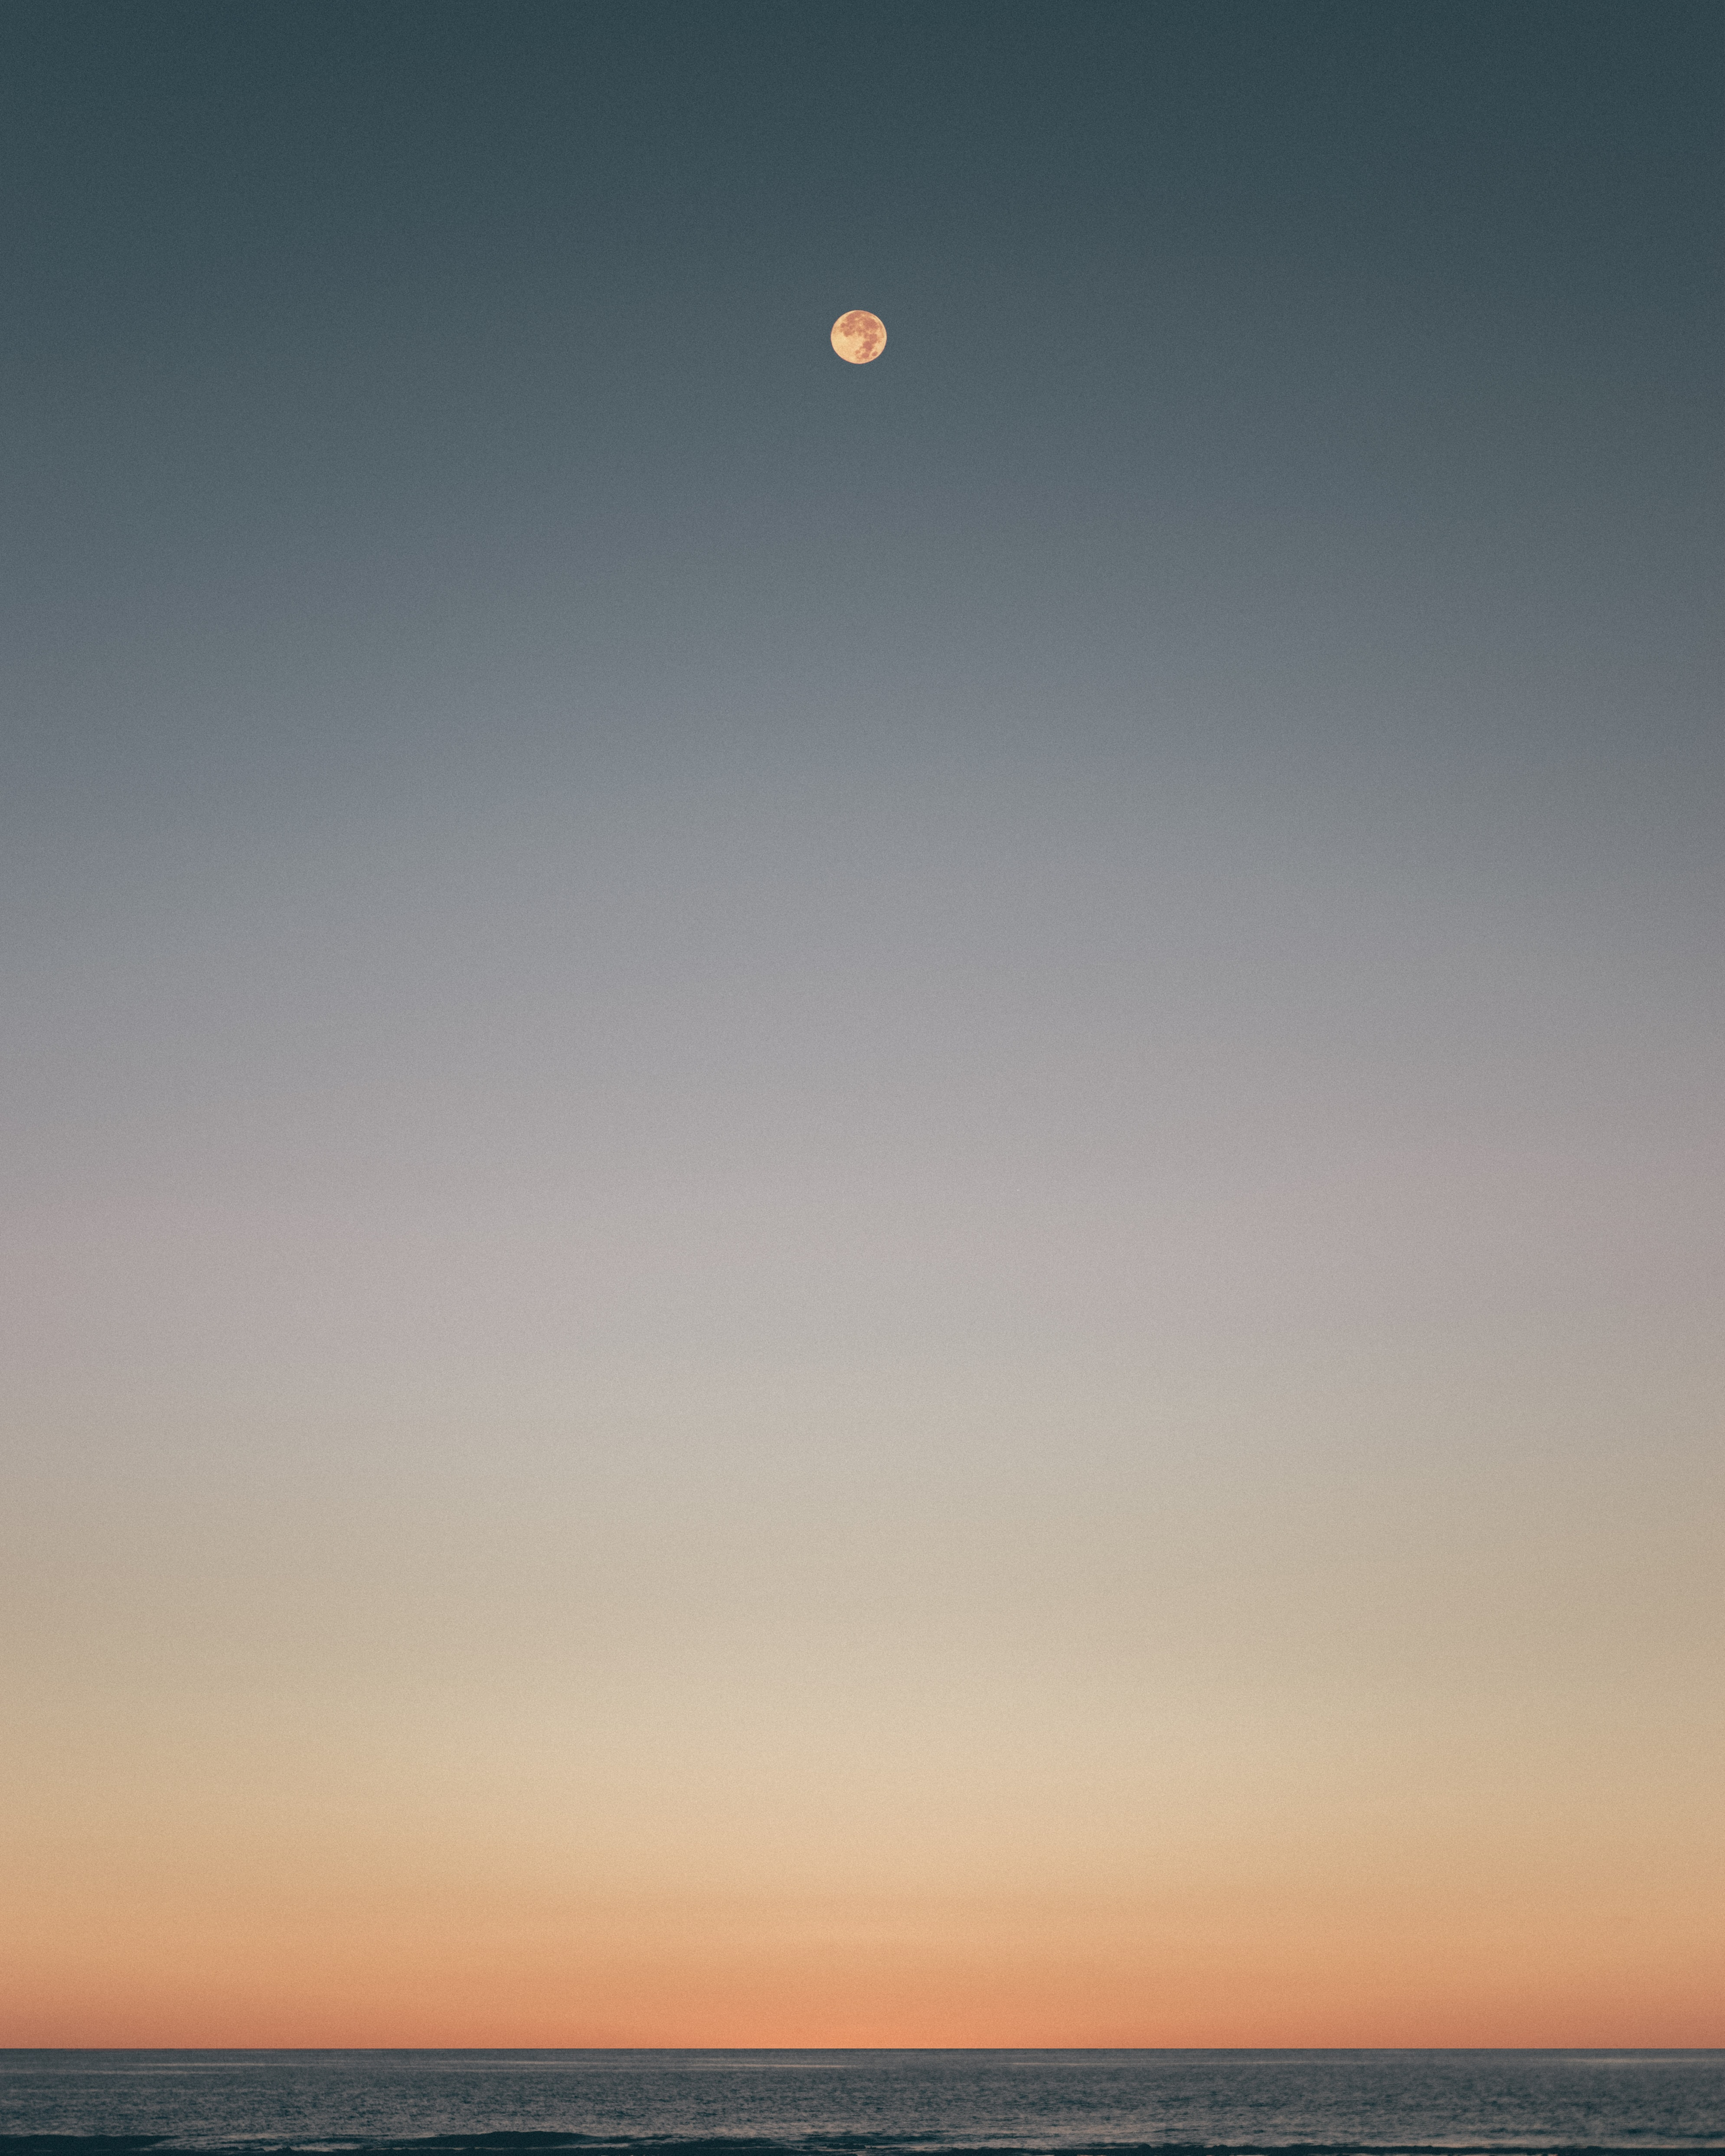 moon over body of water during sunset